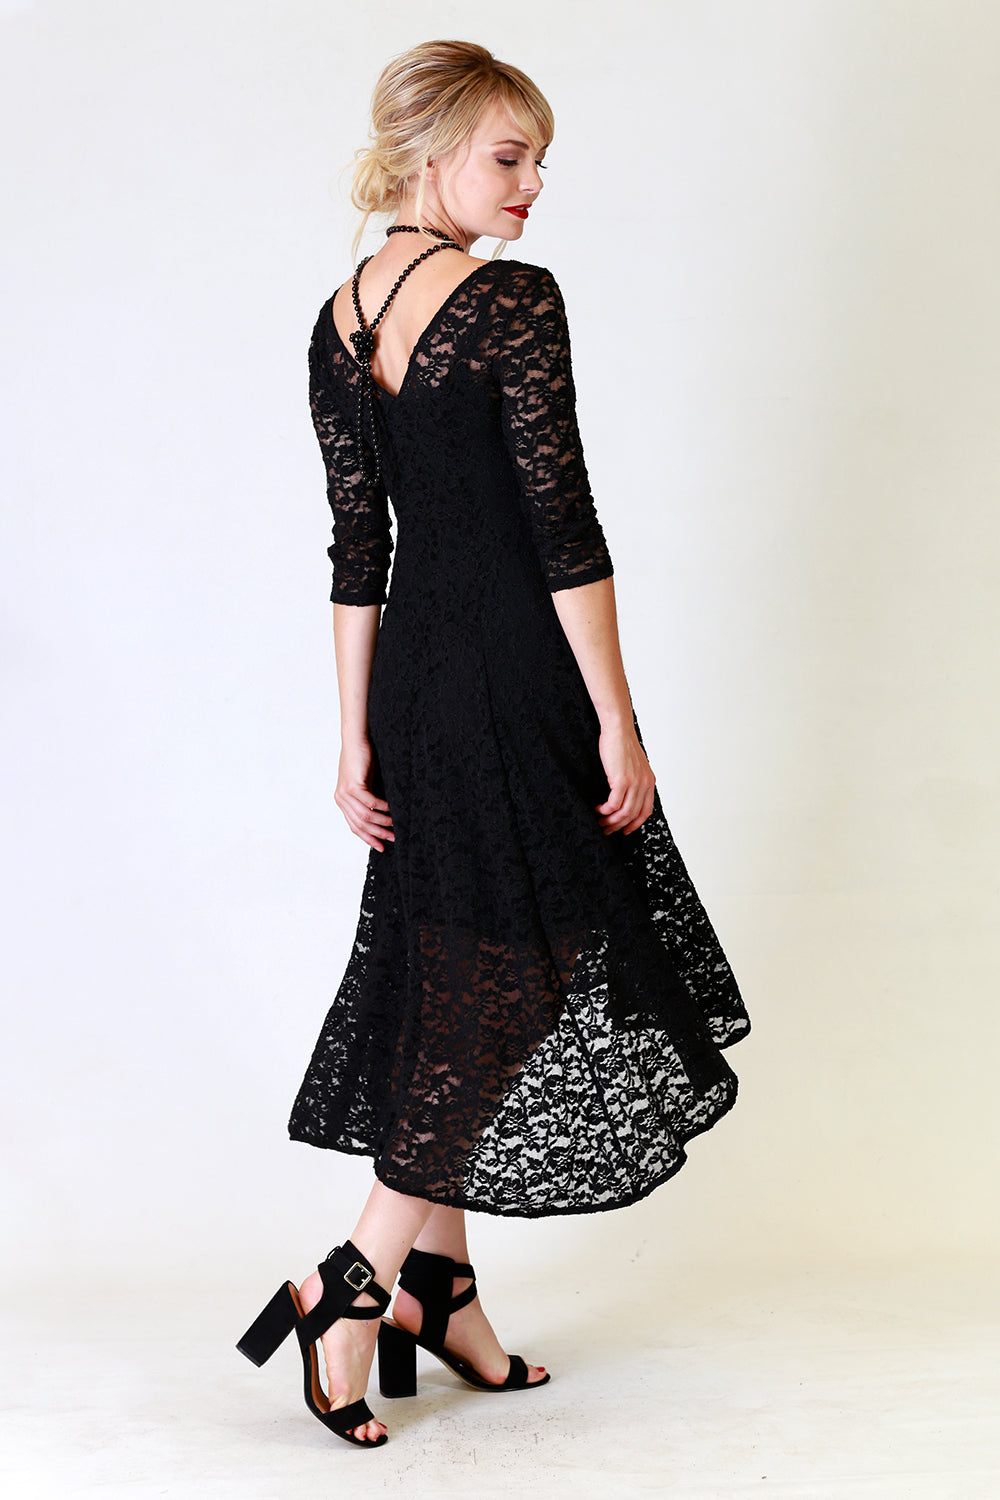 Summer Selina Lace Dress | Black Lace Dress | Autumn Winter 19 Annah Stretton Fashion NZ